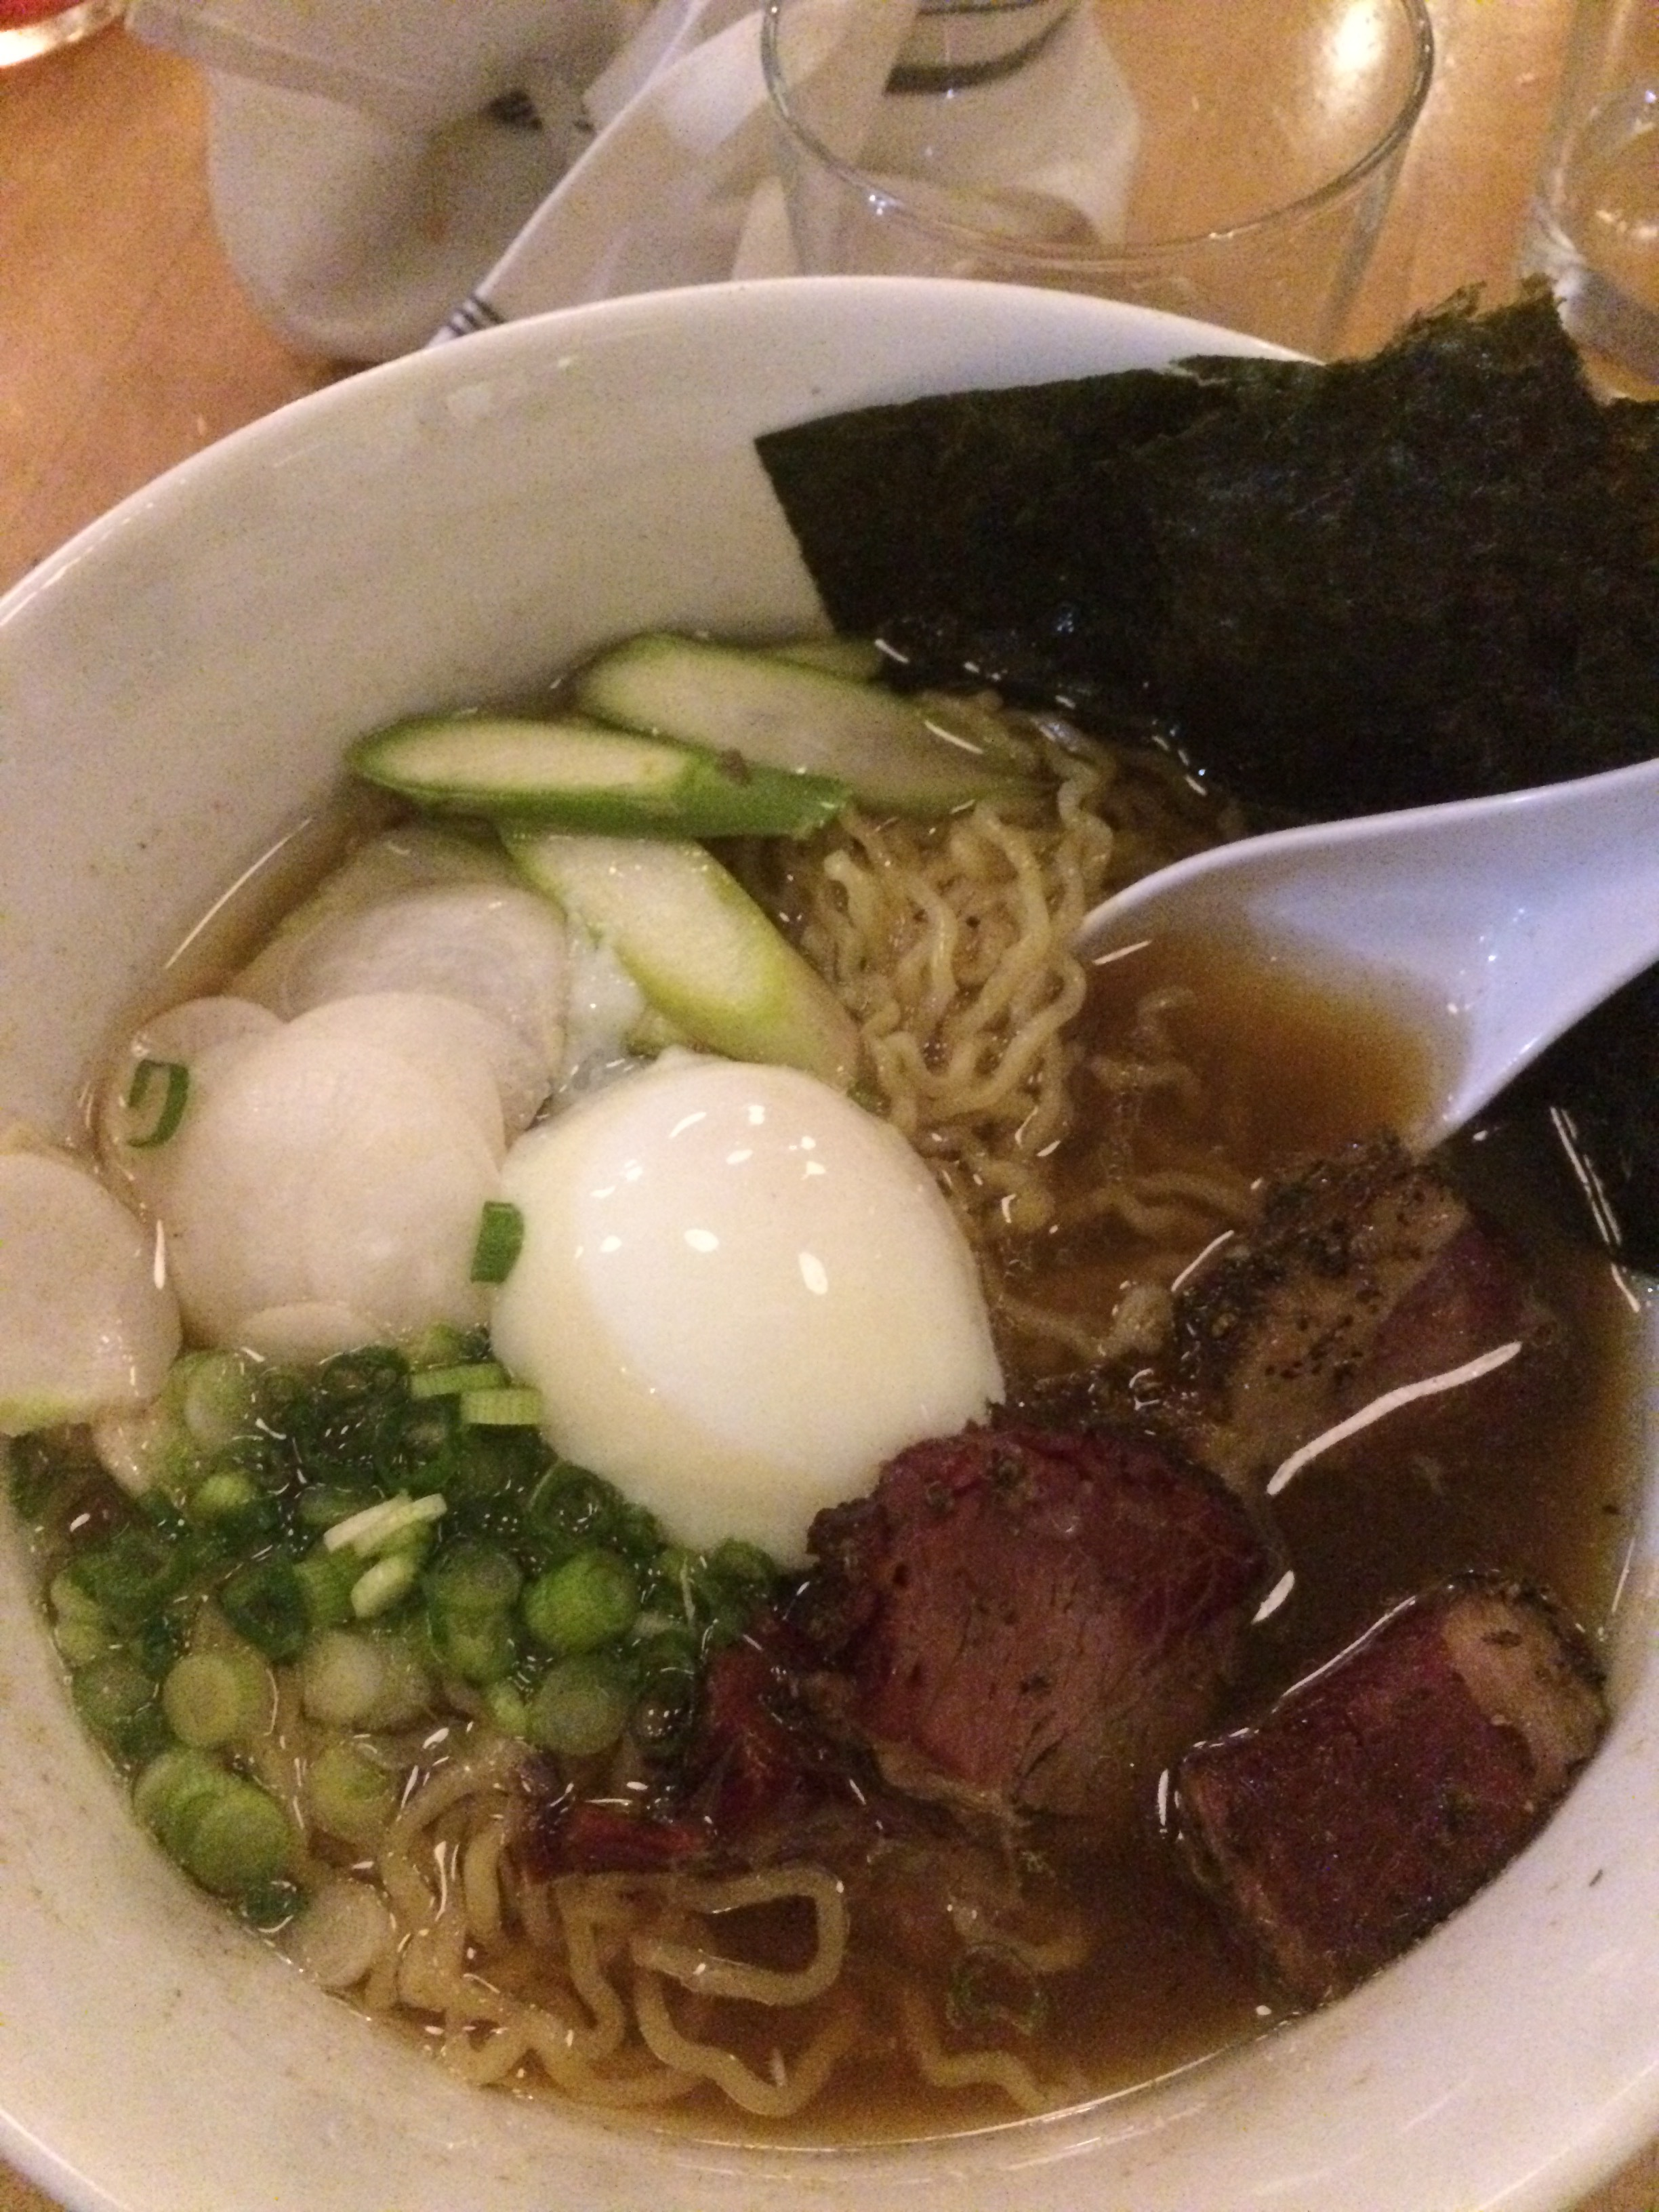 Ddeelliicciioouuss Shoyu Ramen with brisket, courtesy of Chef Rob.